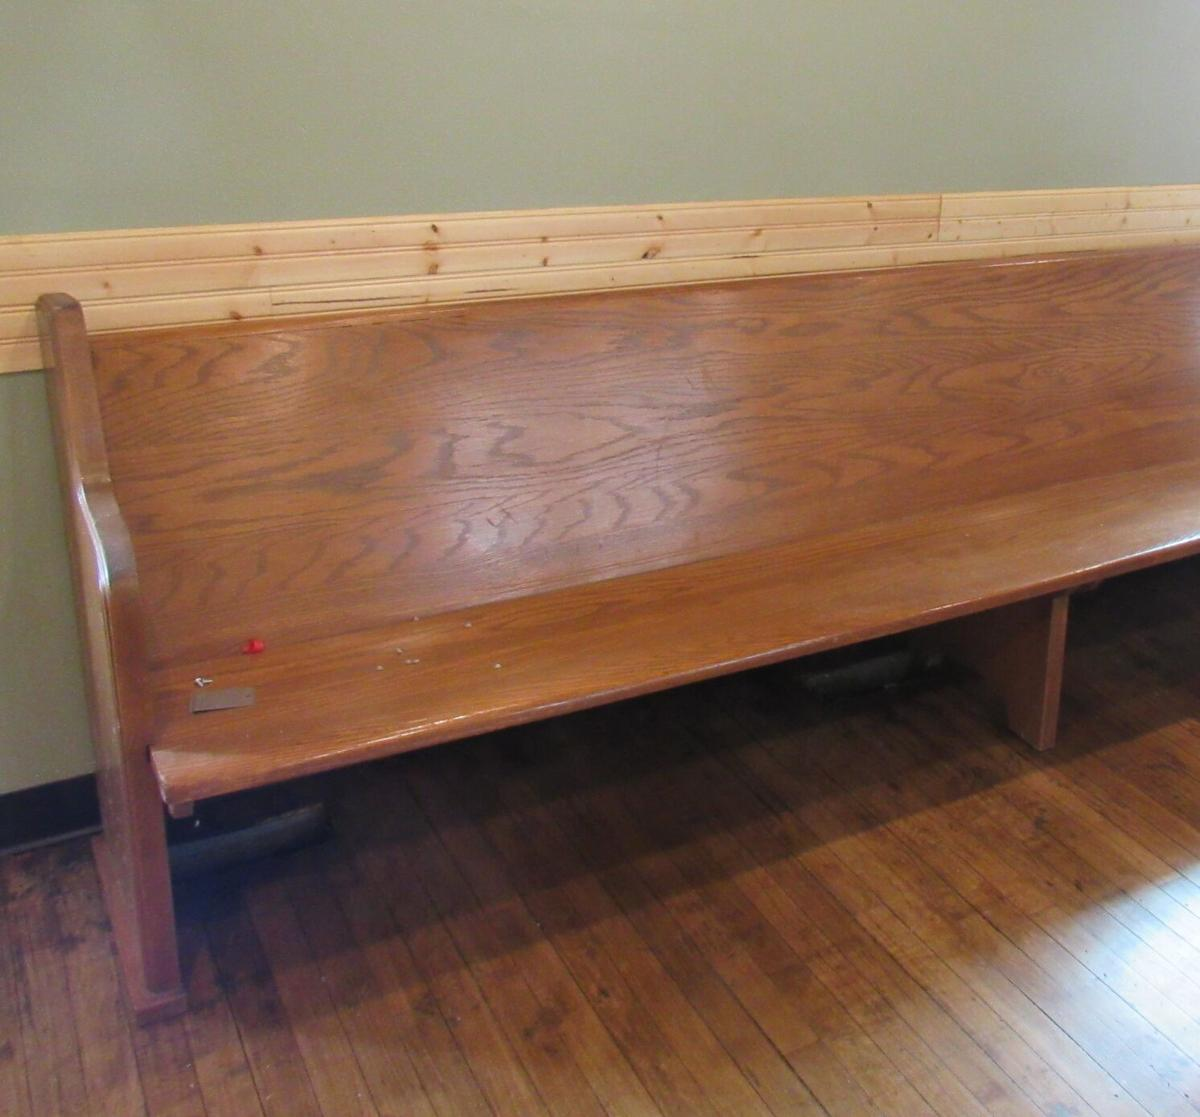 Dry Creek Cafe pew seating